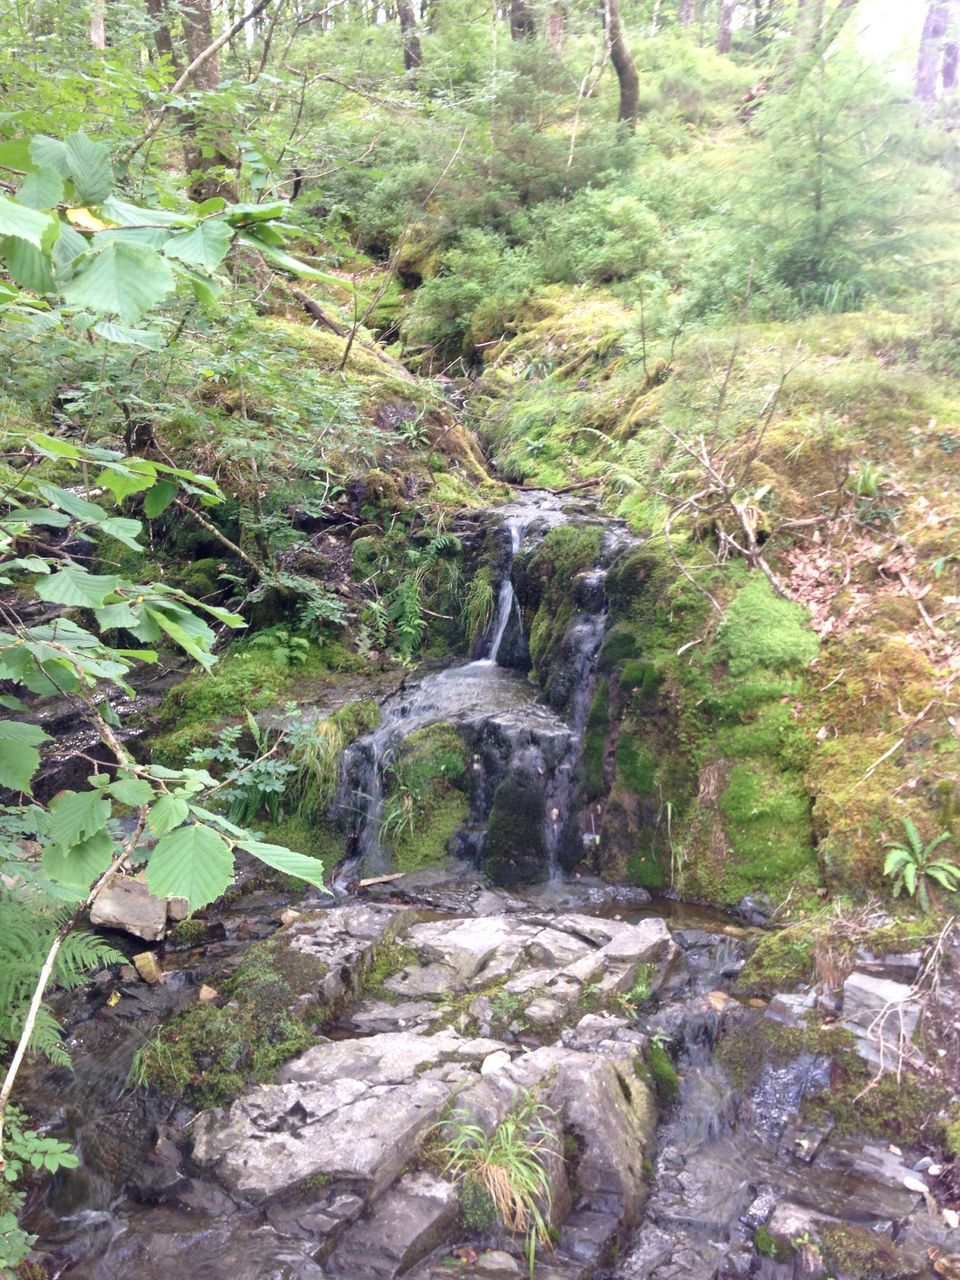 nature, waterfall, rock - object, beauty in nature, no people, plant, growth, day, forest, motion, outdoors, tree, water